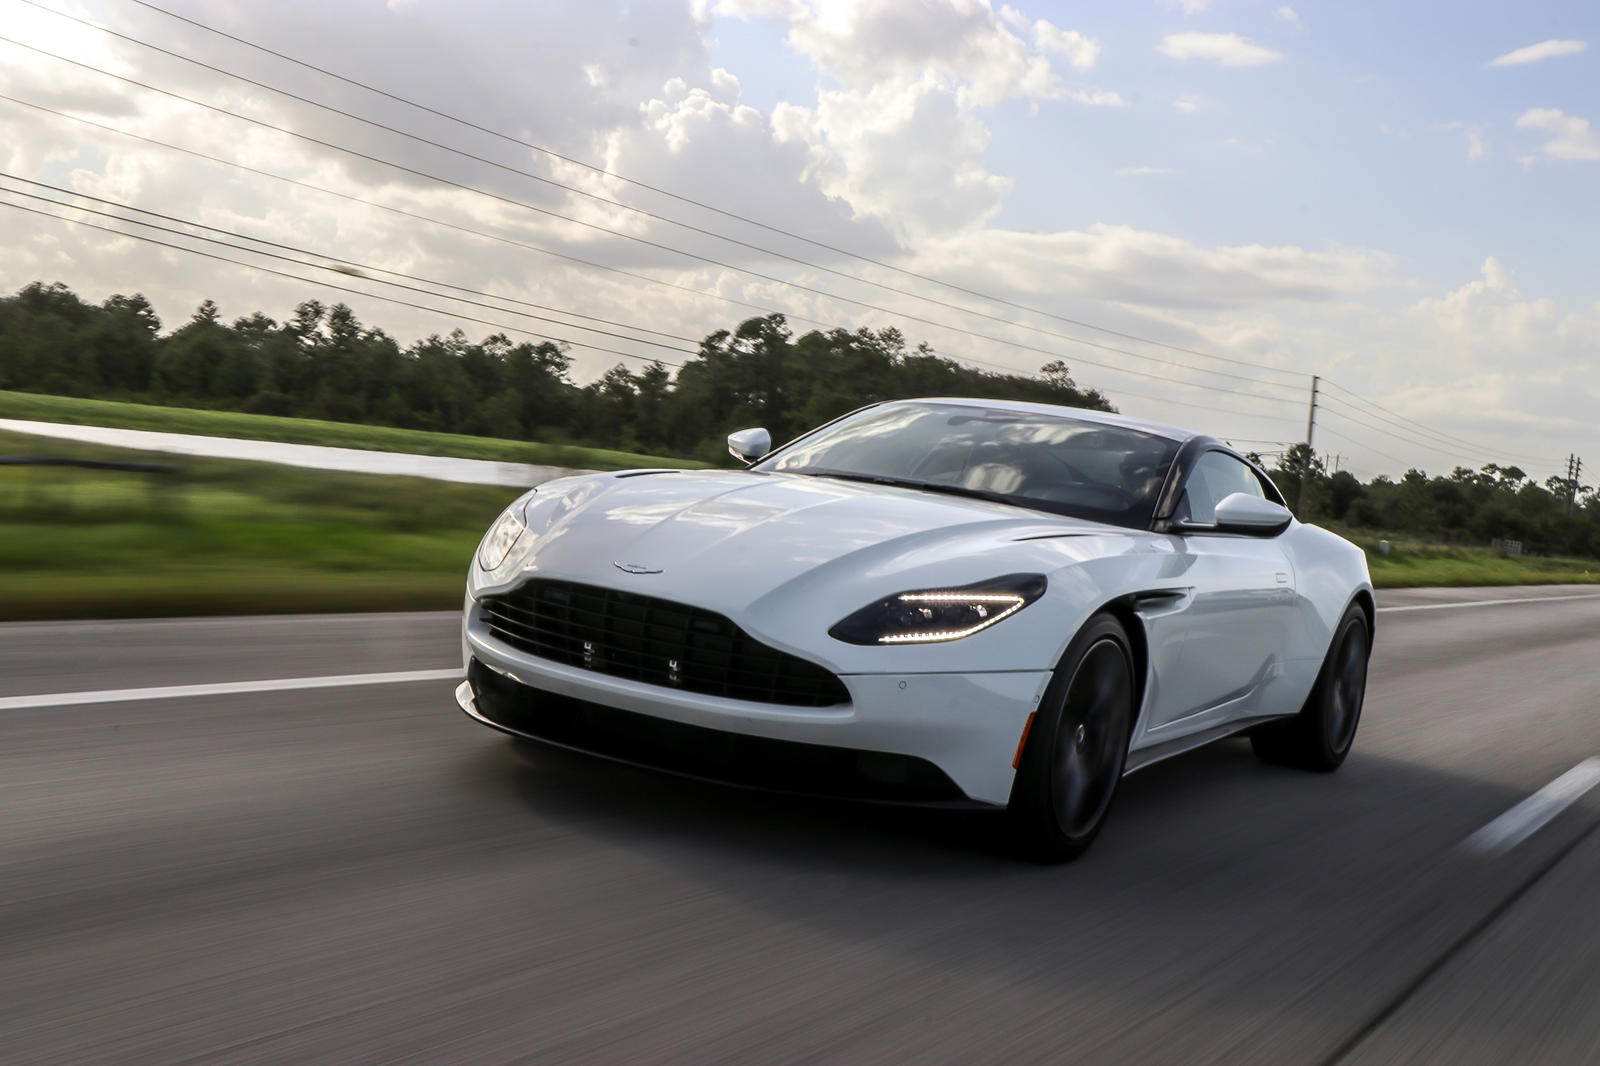 2019 aston martin db11 test drive review: making you cool, even if